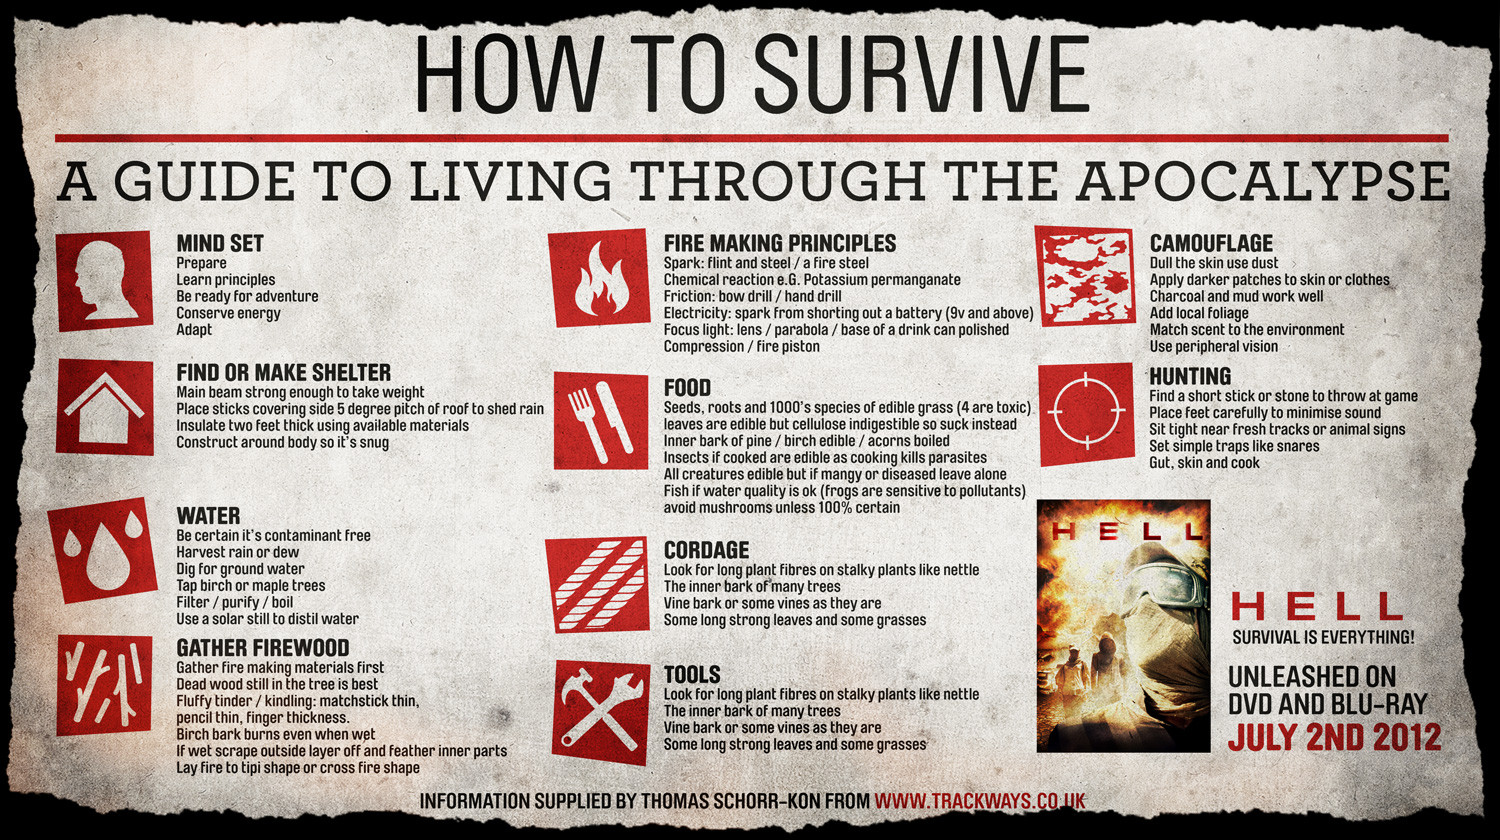 How to Survive the Apocalypse Infographic